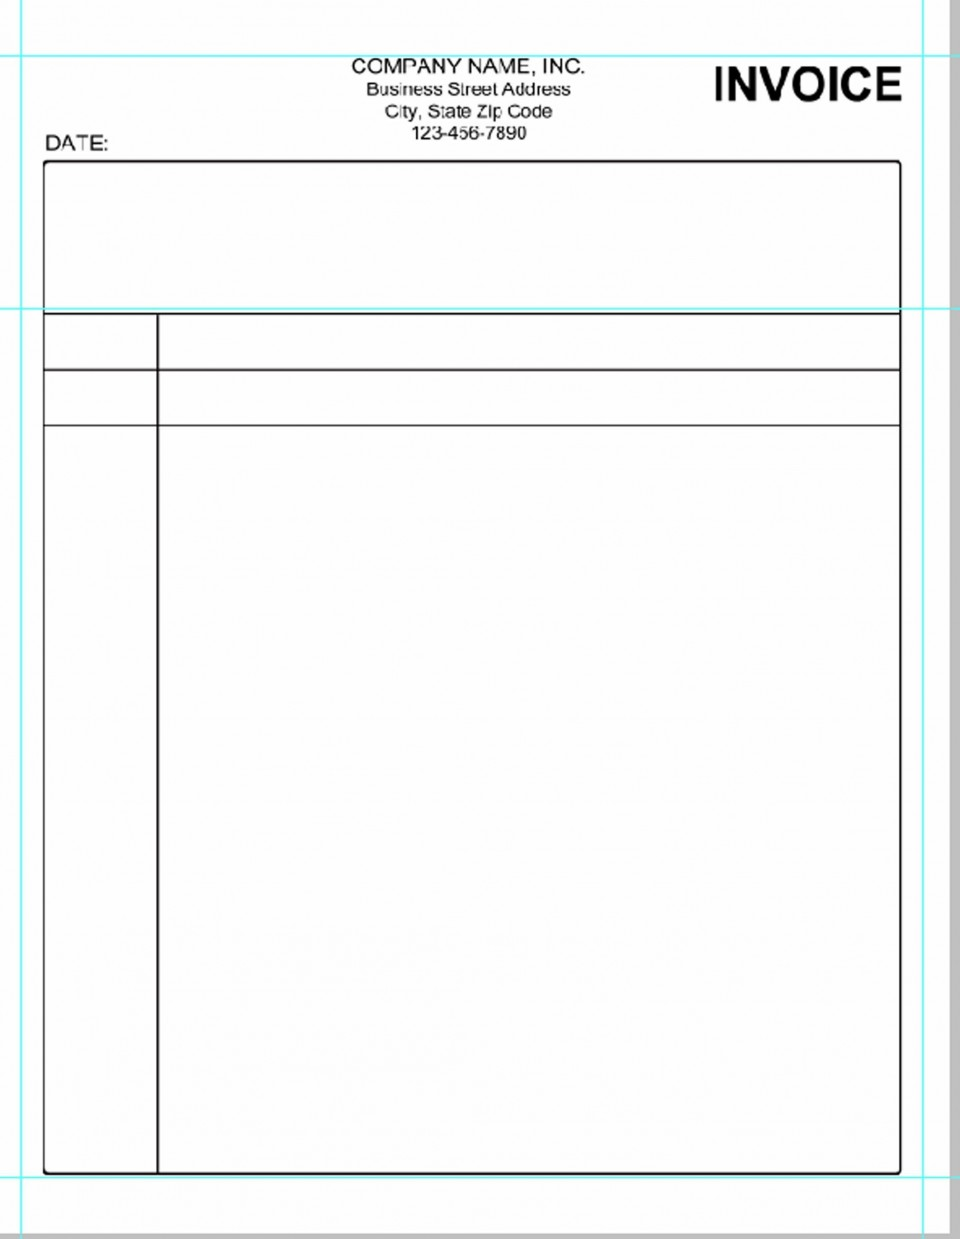 002 Formidable Receipt Template Microsoft Word High Definition  Invoice Free Money Blank960